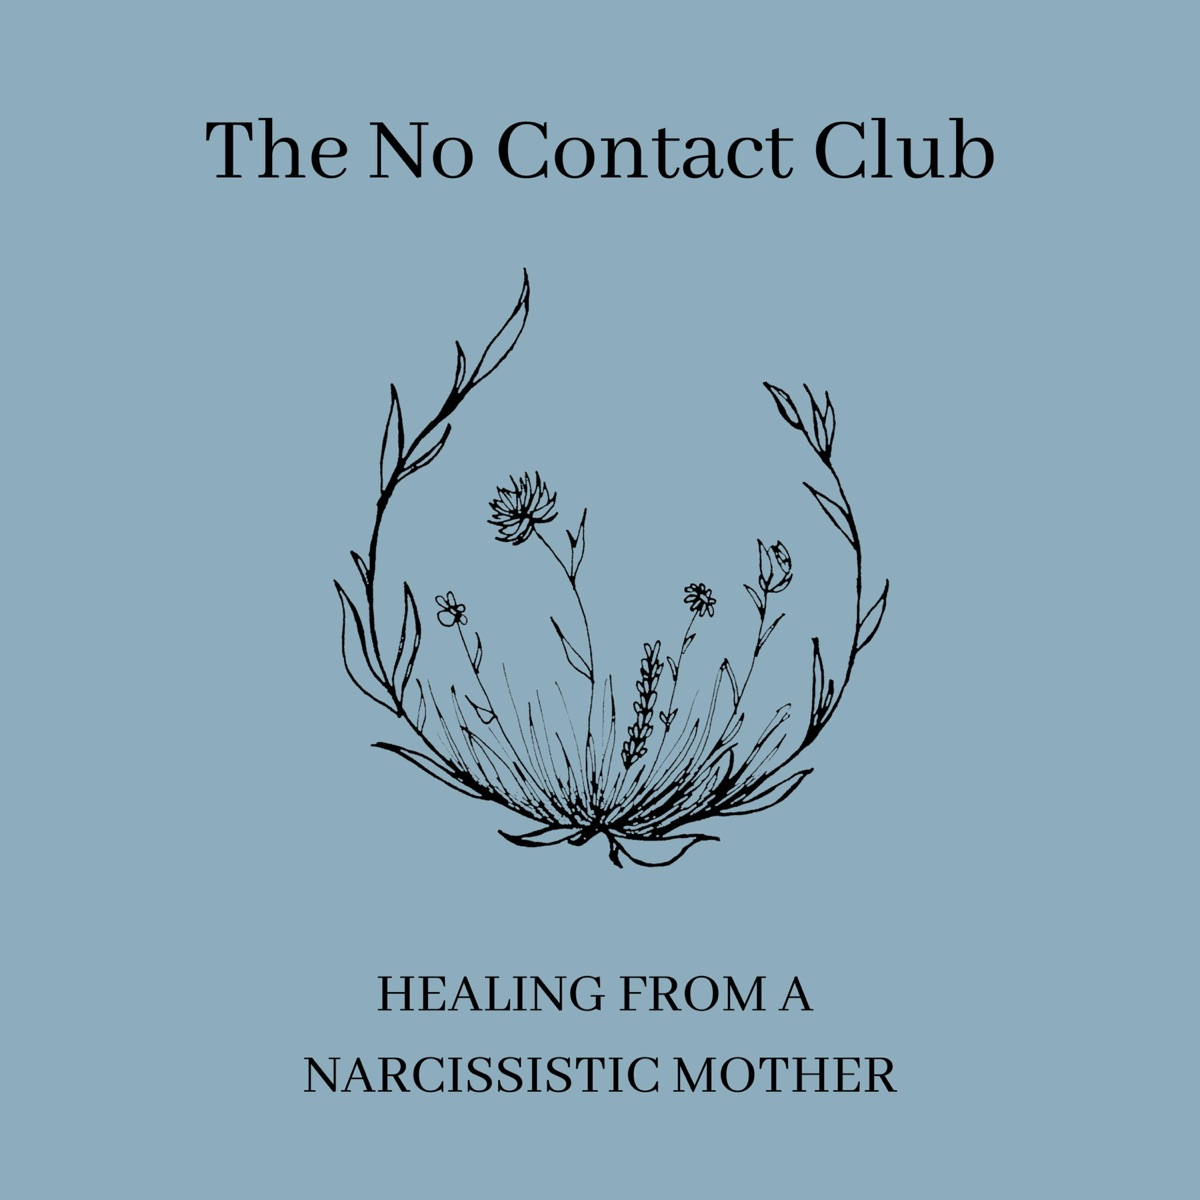 The No Contact Club: Healing From A Narcissistic Mother